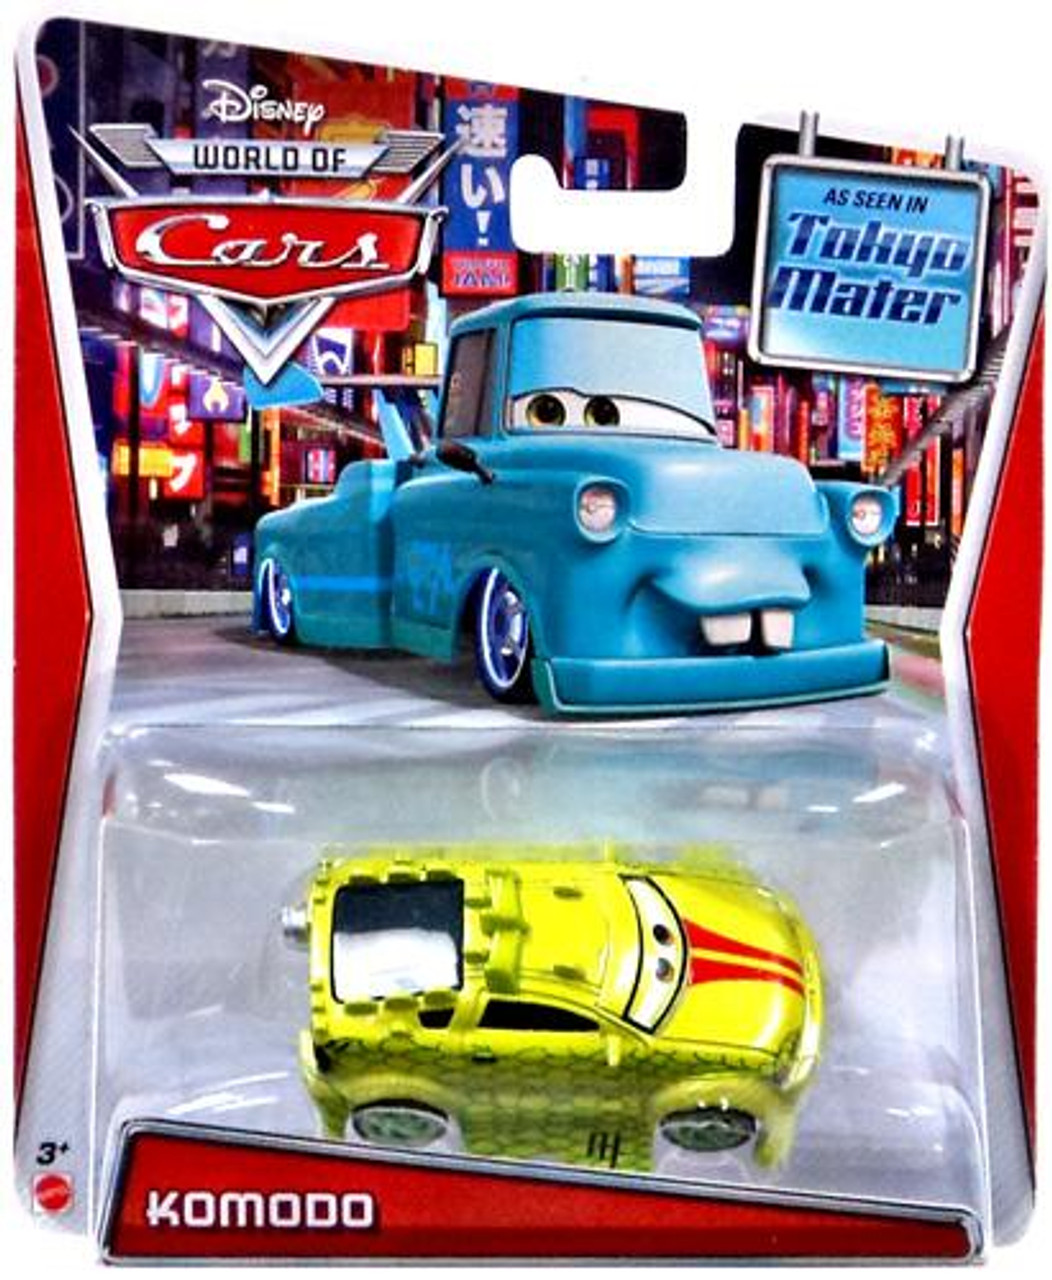 Disney Cars The World of Cars Series 2 Komodo Exclusive Diecast Car